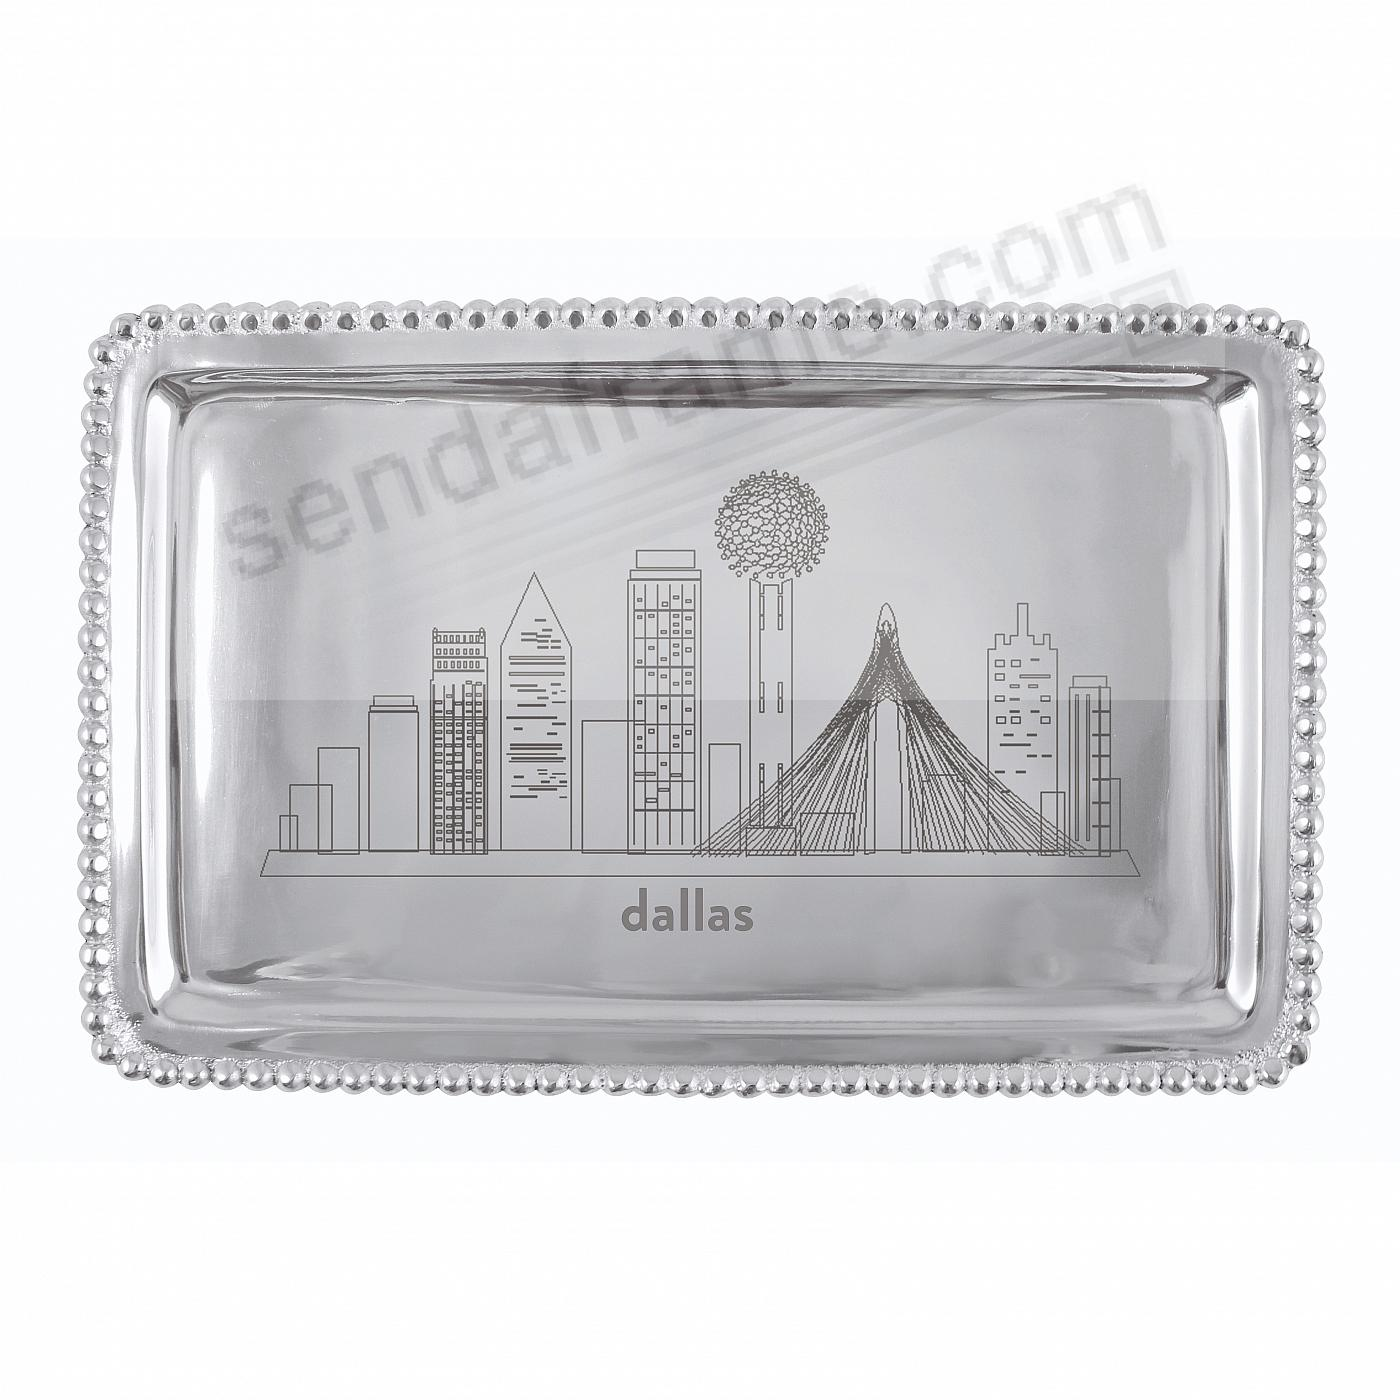 The DALLAS-TX CITYSCAPE BEADED BUFFET TRAY crafted by Mariposa®